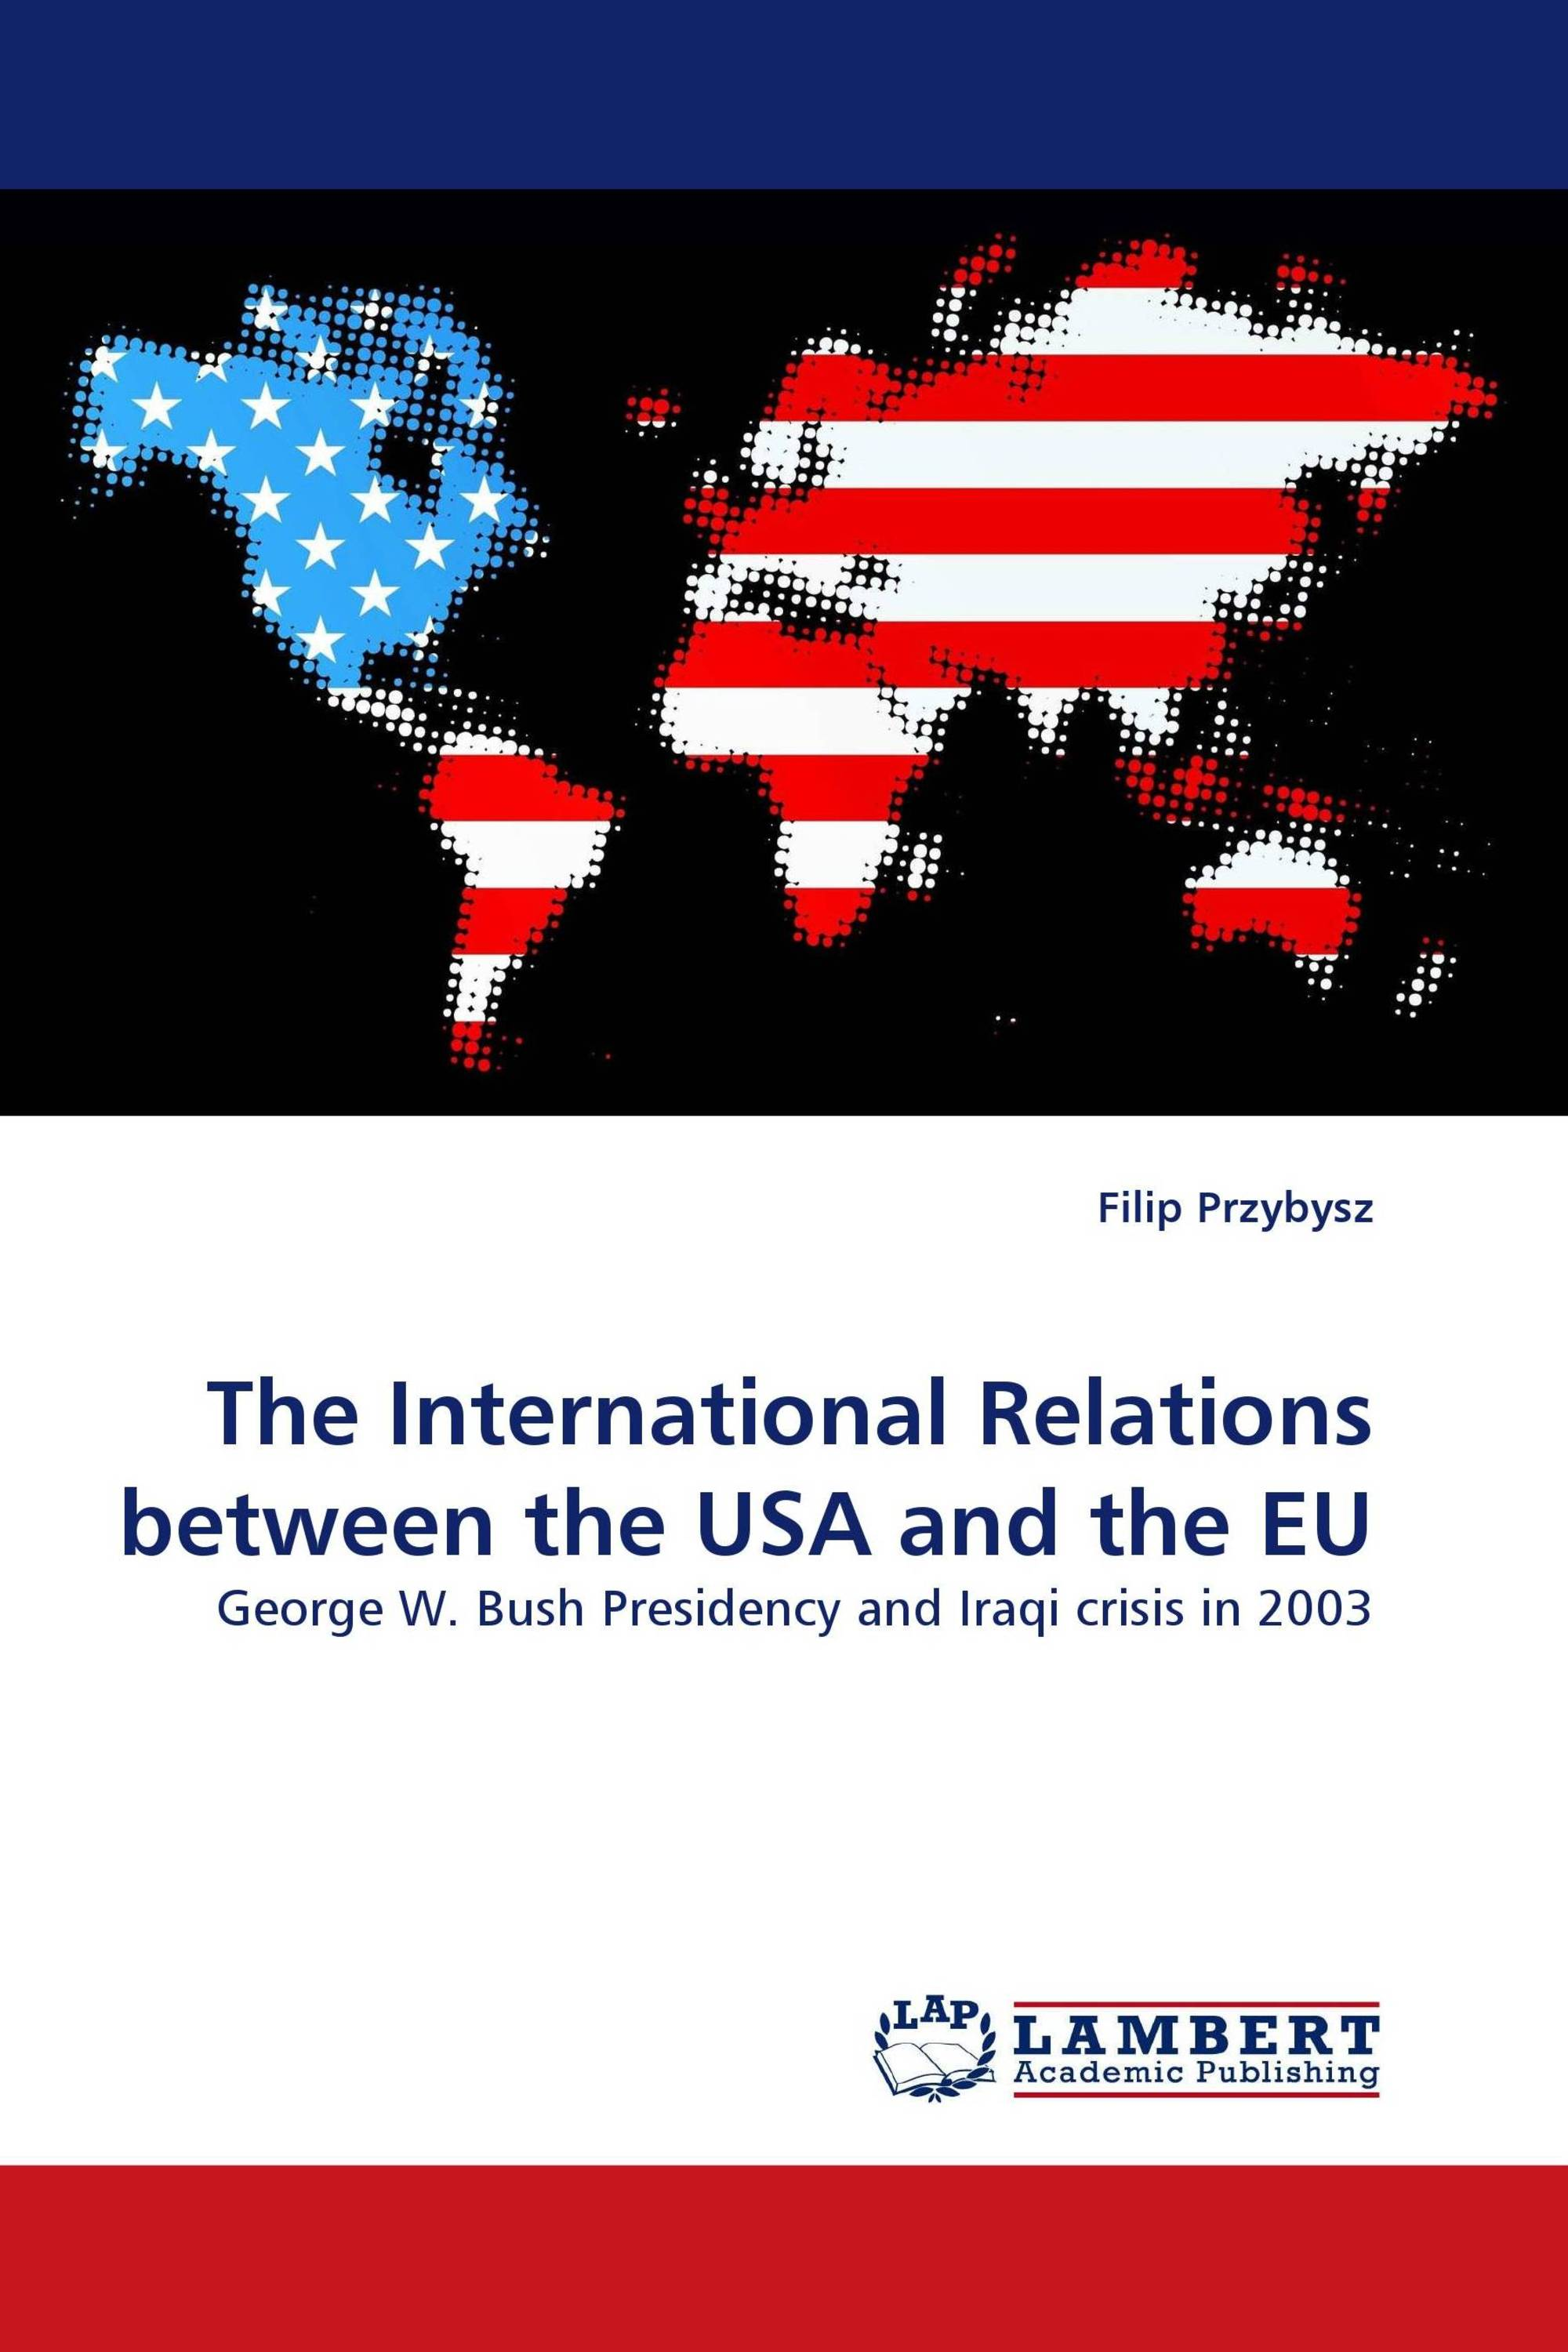 The International Relations between the USA and the EU